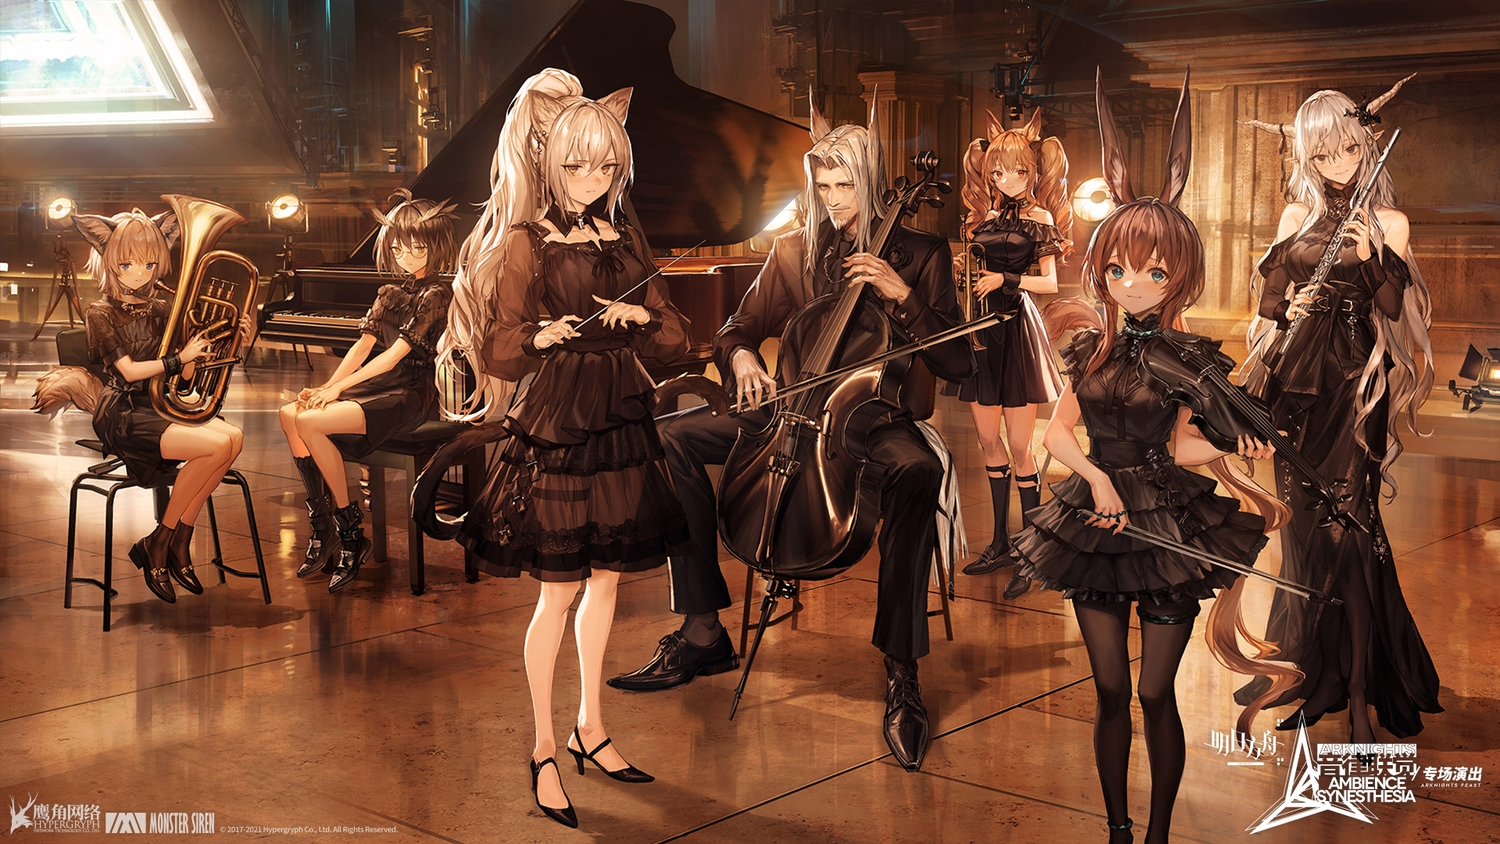 amiya_(arknights) angelina_(arknights) animal_ears arknights blue_eyes brown_hair bunny_ears bunnygirl catgirl dress foxgirl glasses gothic gray_hair group hellagur_(arknights) horns instrument lm7_(op-center) logo long_hair male pantyhose piano pointed_ears ponytail red_eyes schwarz_(arknights) shining_(arknights) silence_(arknights) sussurro_(arknights) tail twintails violin yellow_eyes